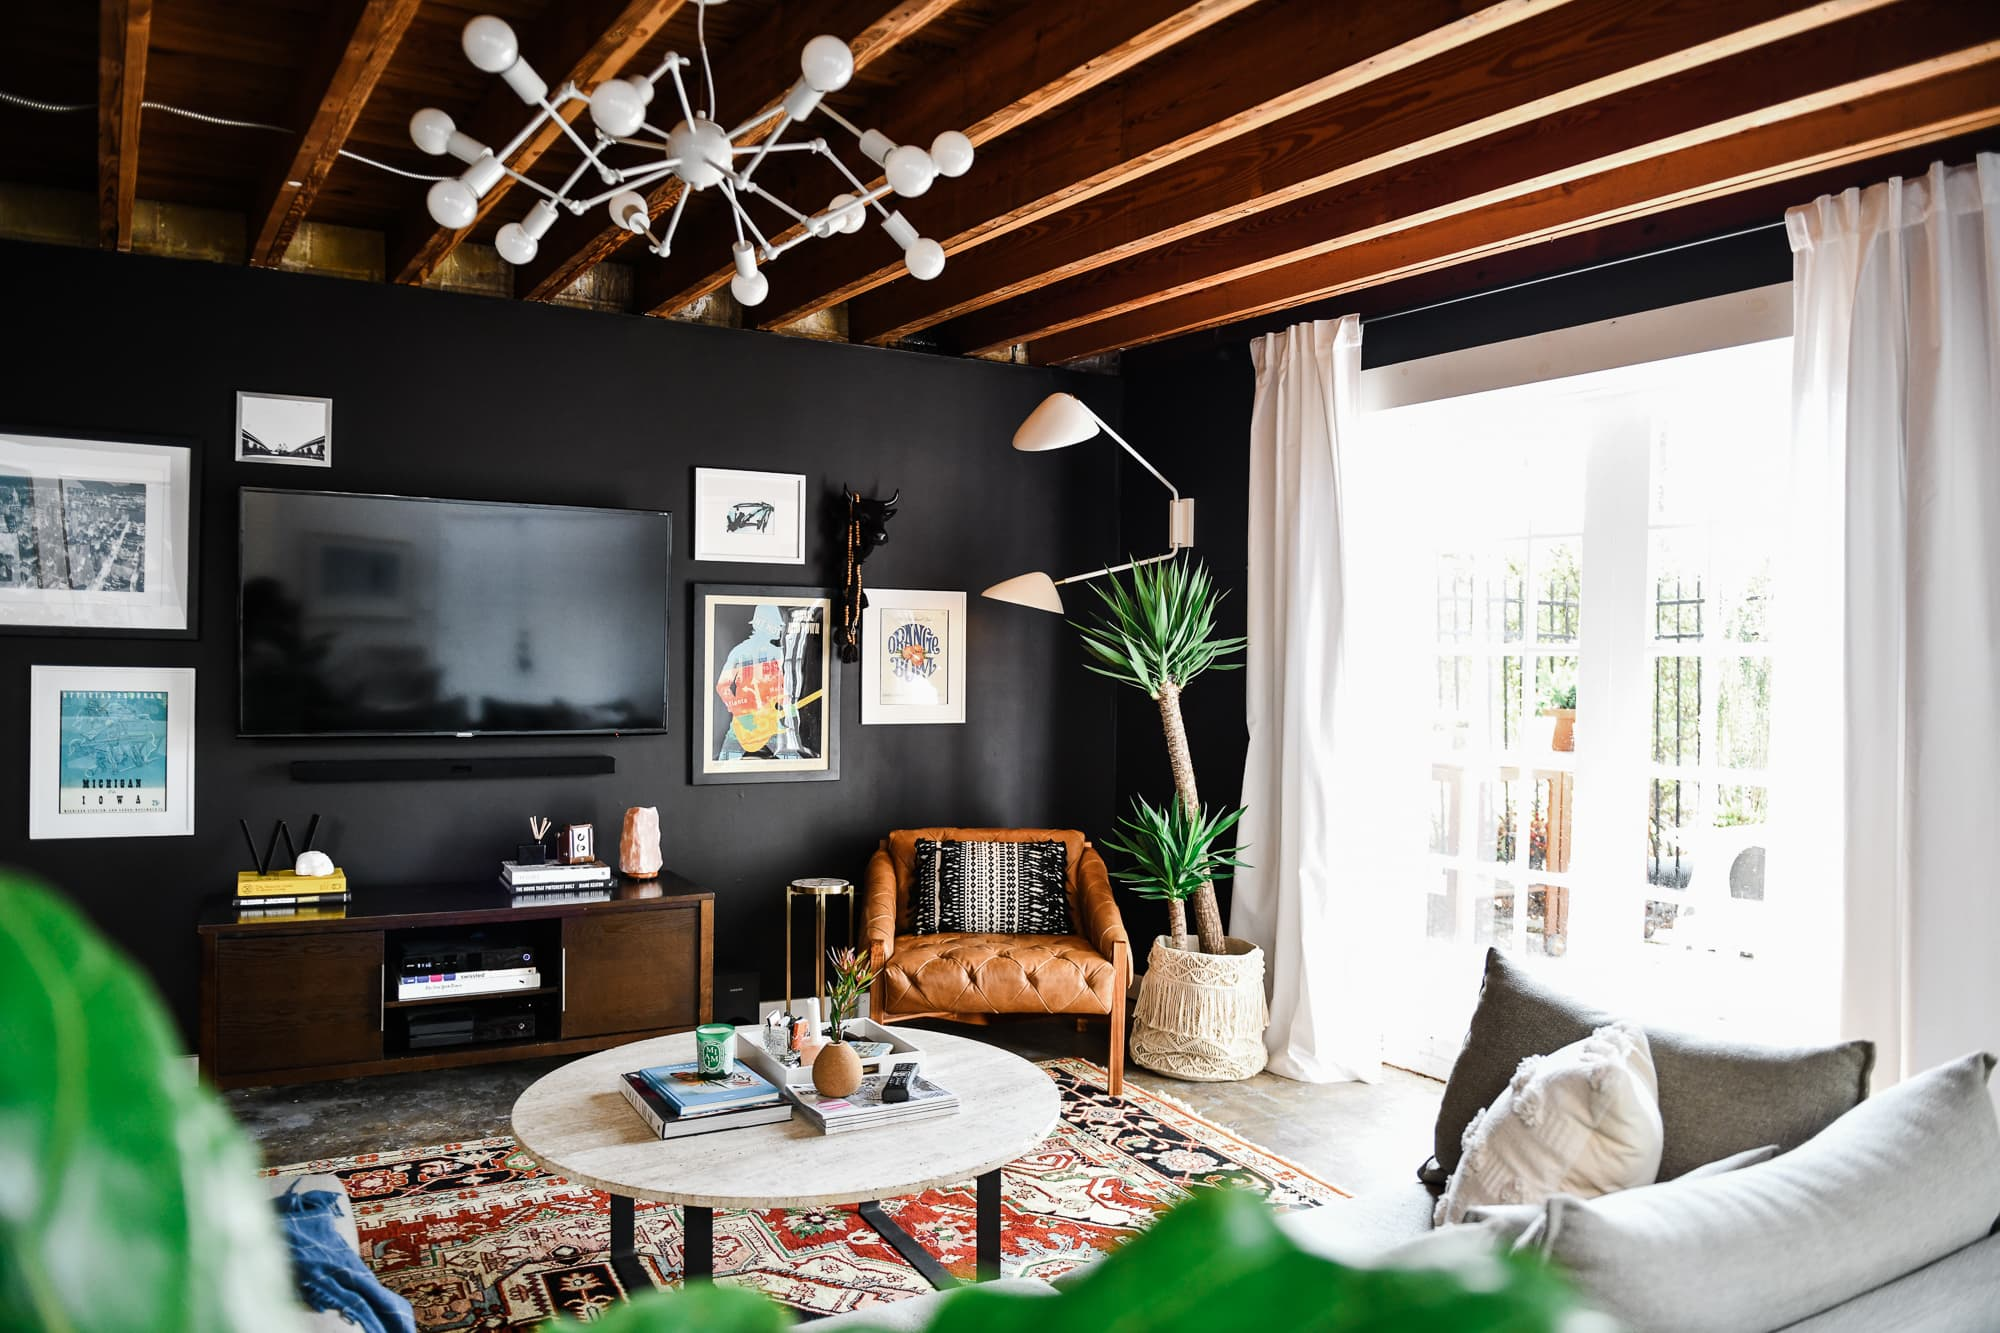 See How Apartment Therapy's Lifestyle Editor Lives: gallery image 9